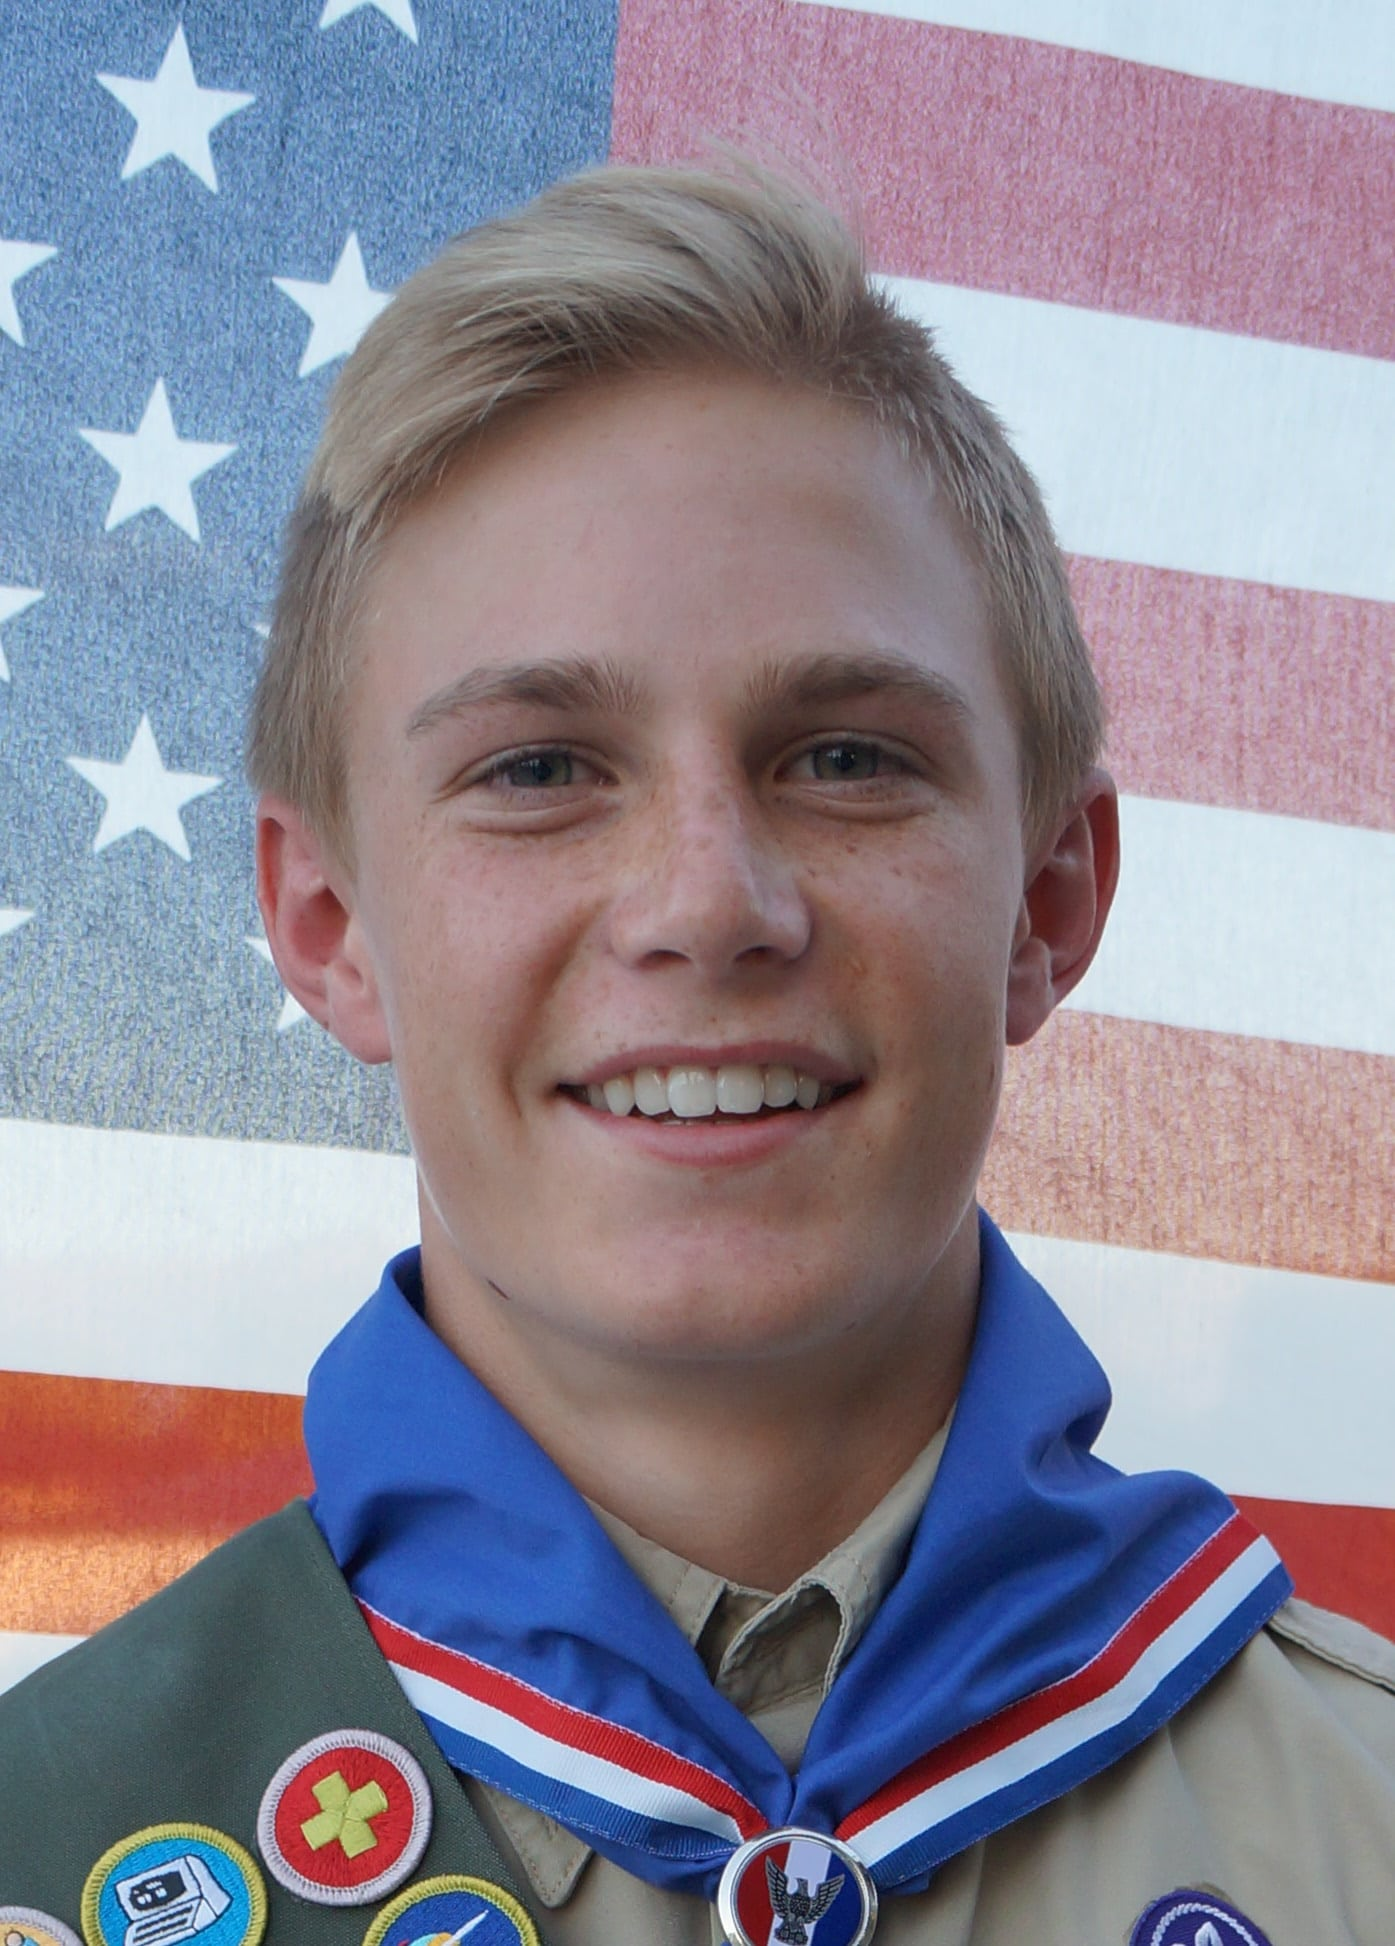 Ashten Roman received his Eagle Scout Award